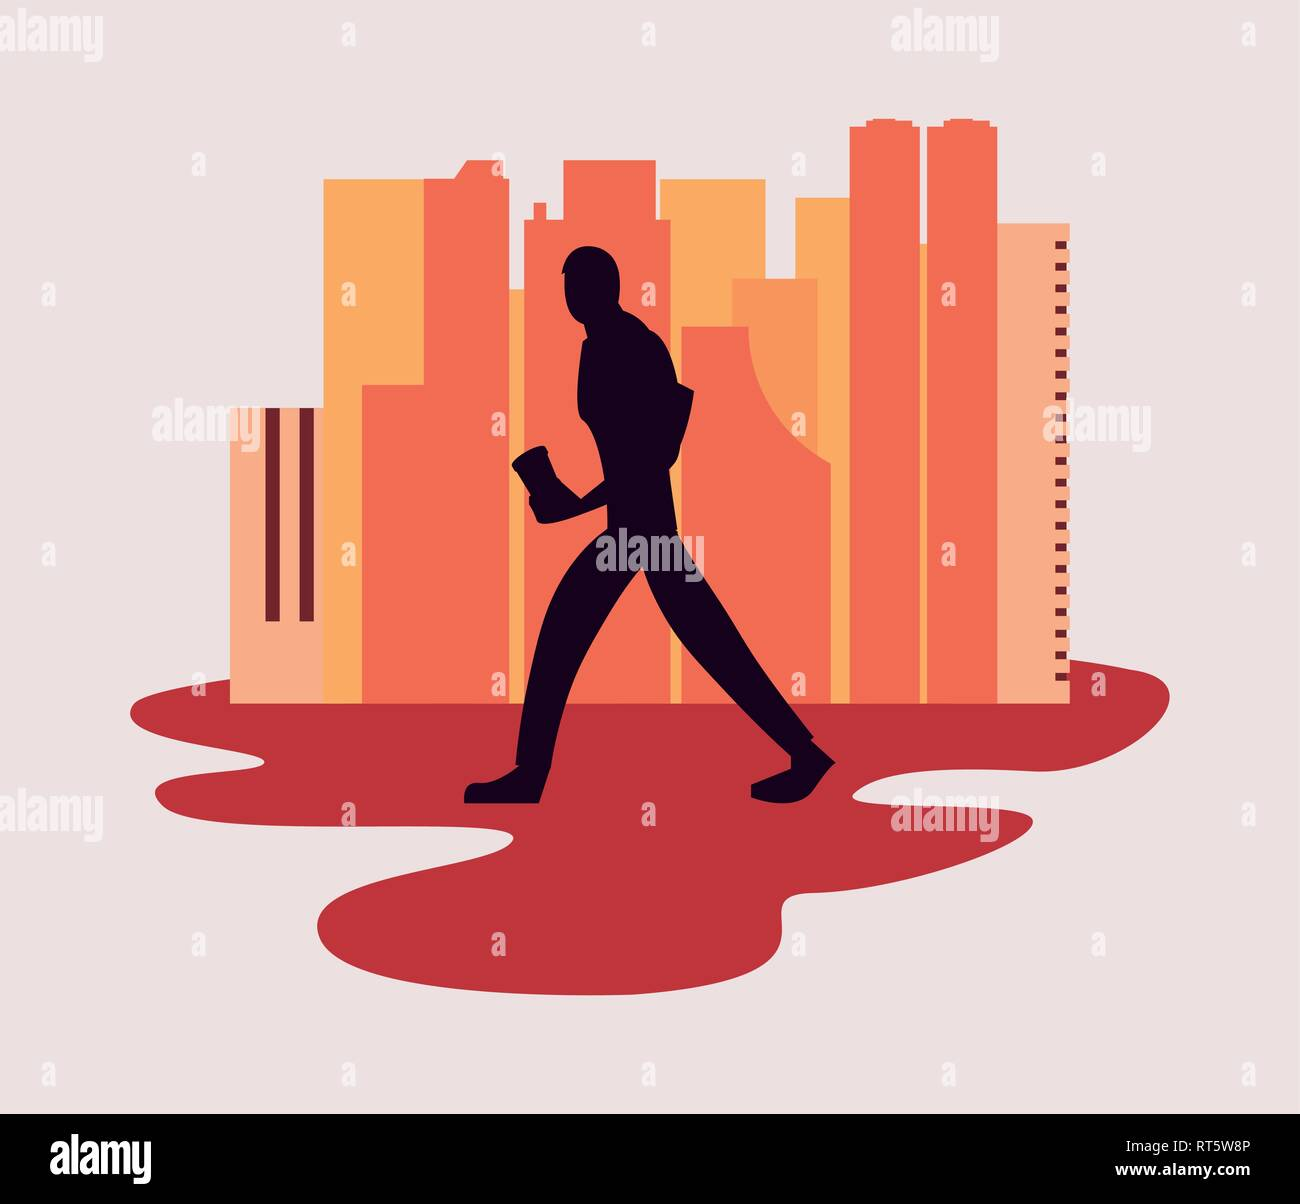 man silhouette walking with disposable cup in hand vector illustration - Stock Vector